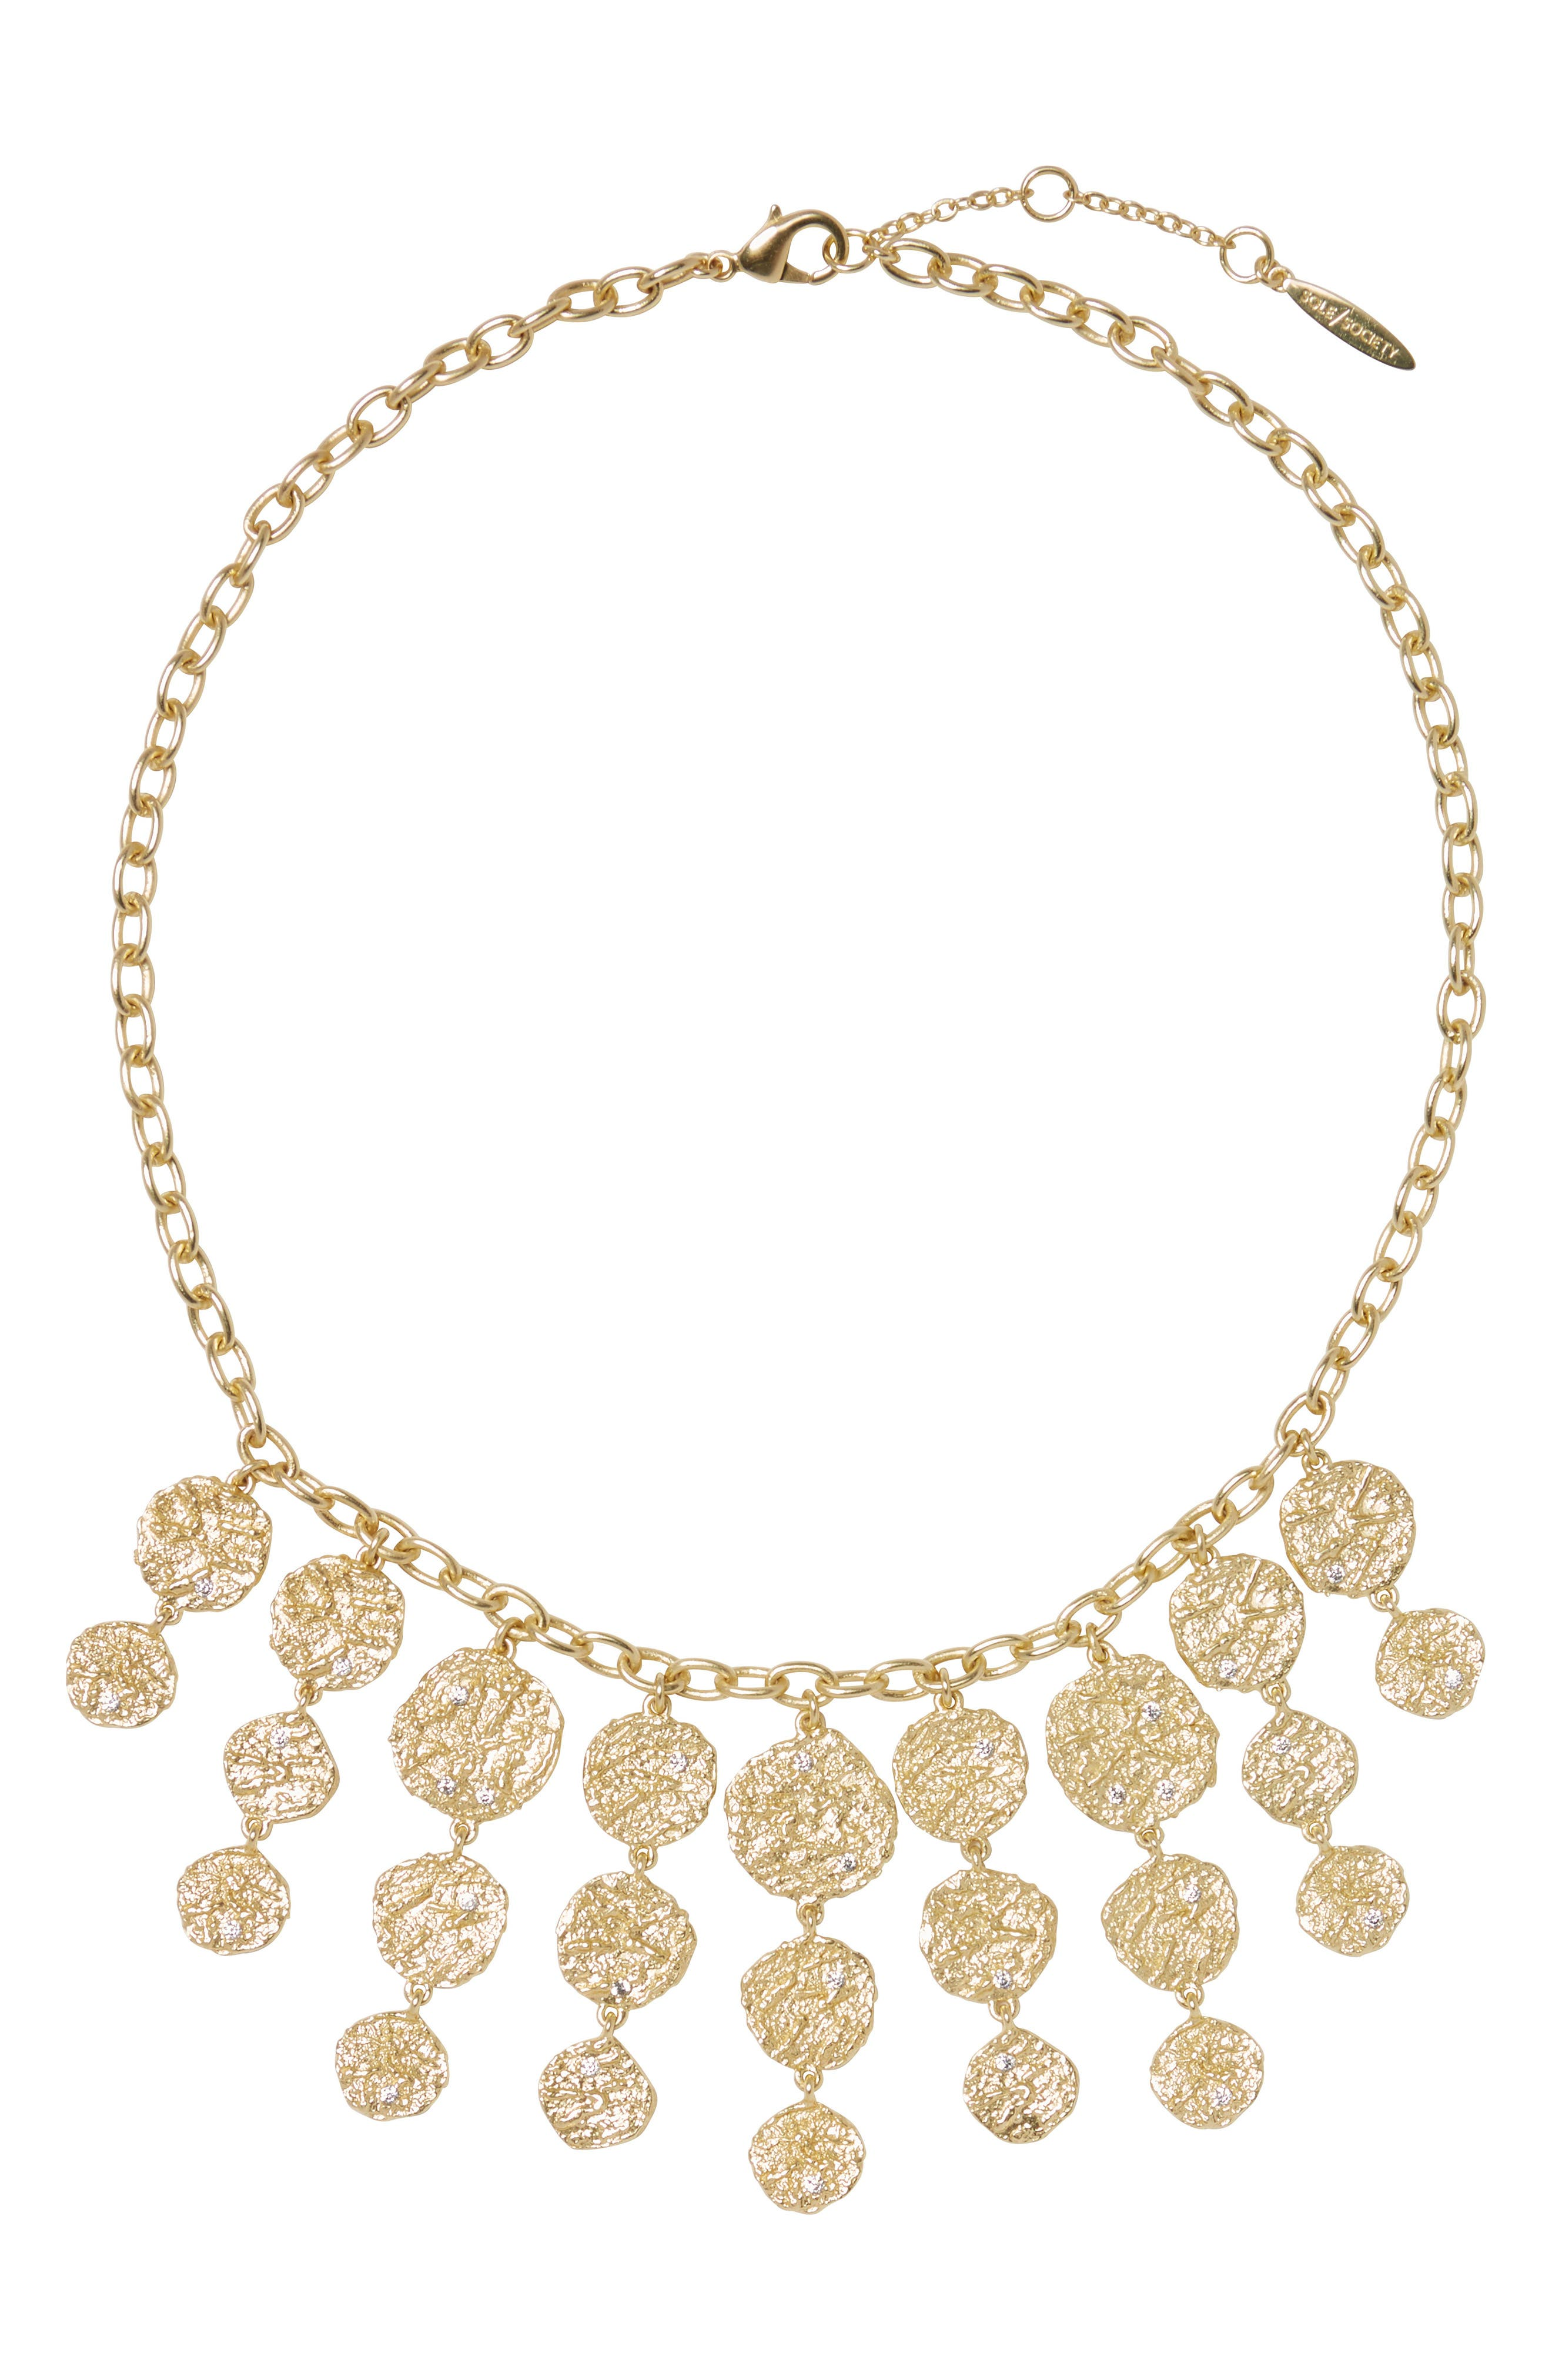 Sole Society Dramatic Textured Disc Bib Necklace